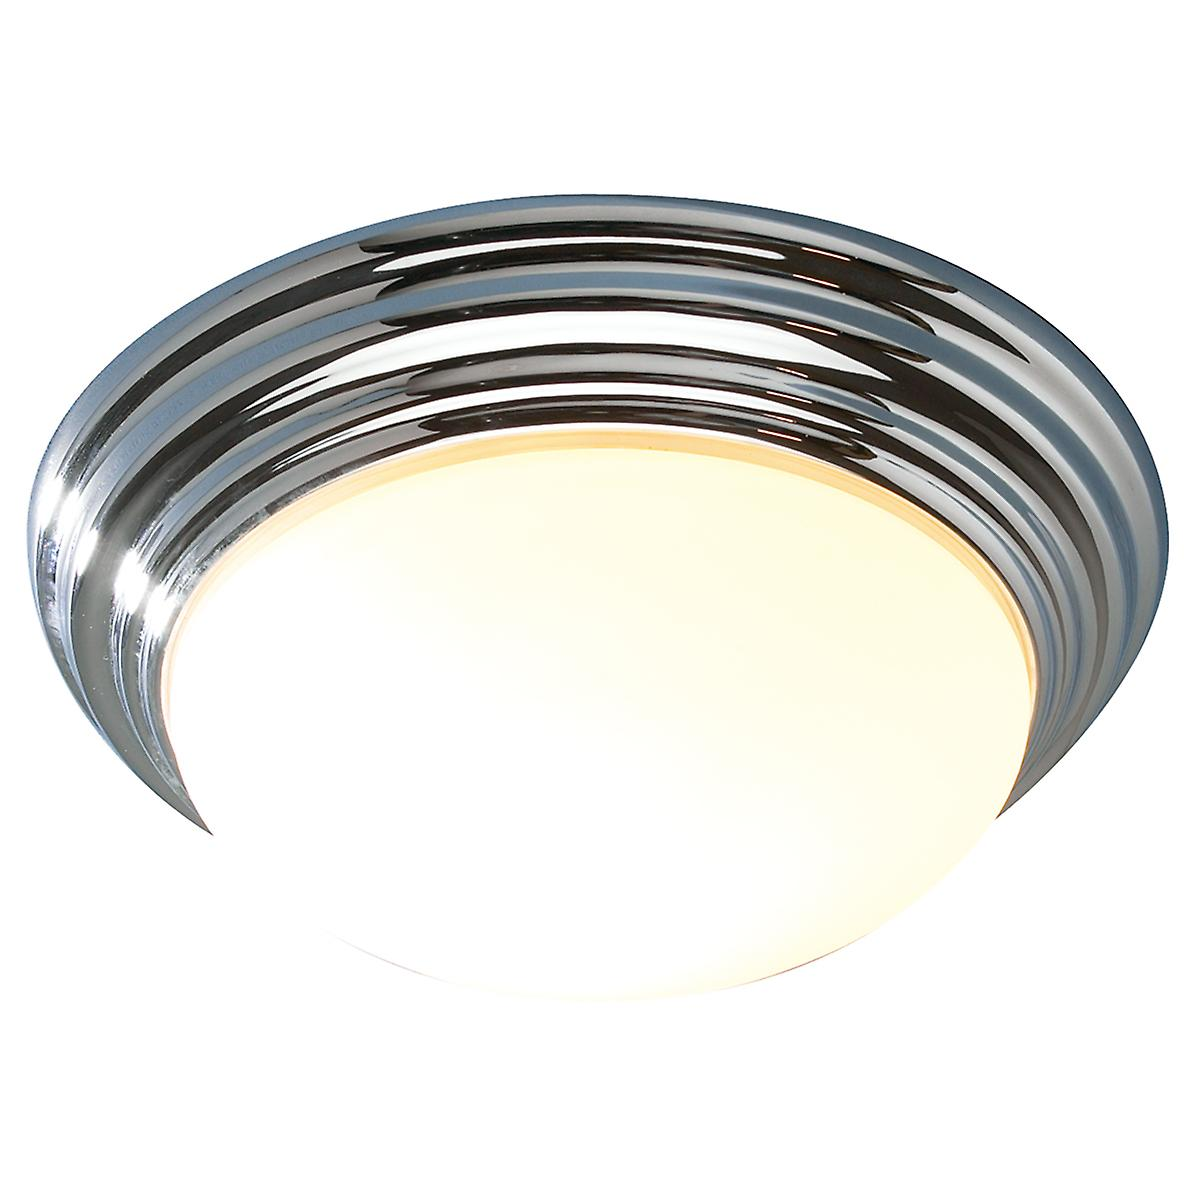 Dar BAR5250 Barclay Modern Chrome Bathroom Flush Ceiling Light - 31cm